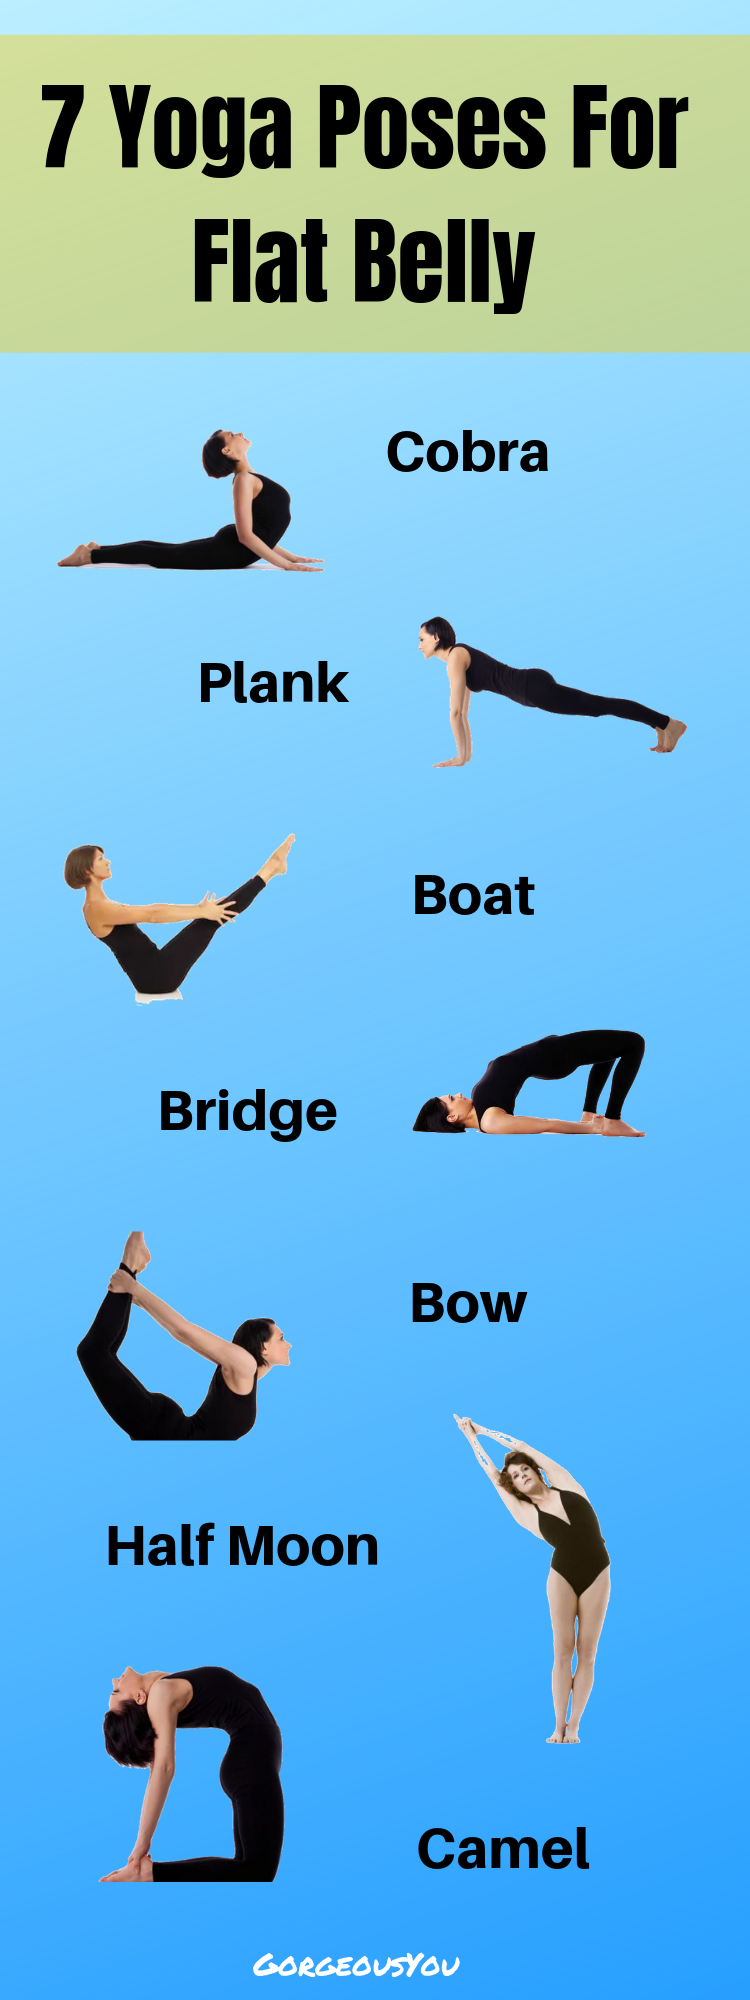 7 Yoga Poses For Flat Belly